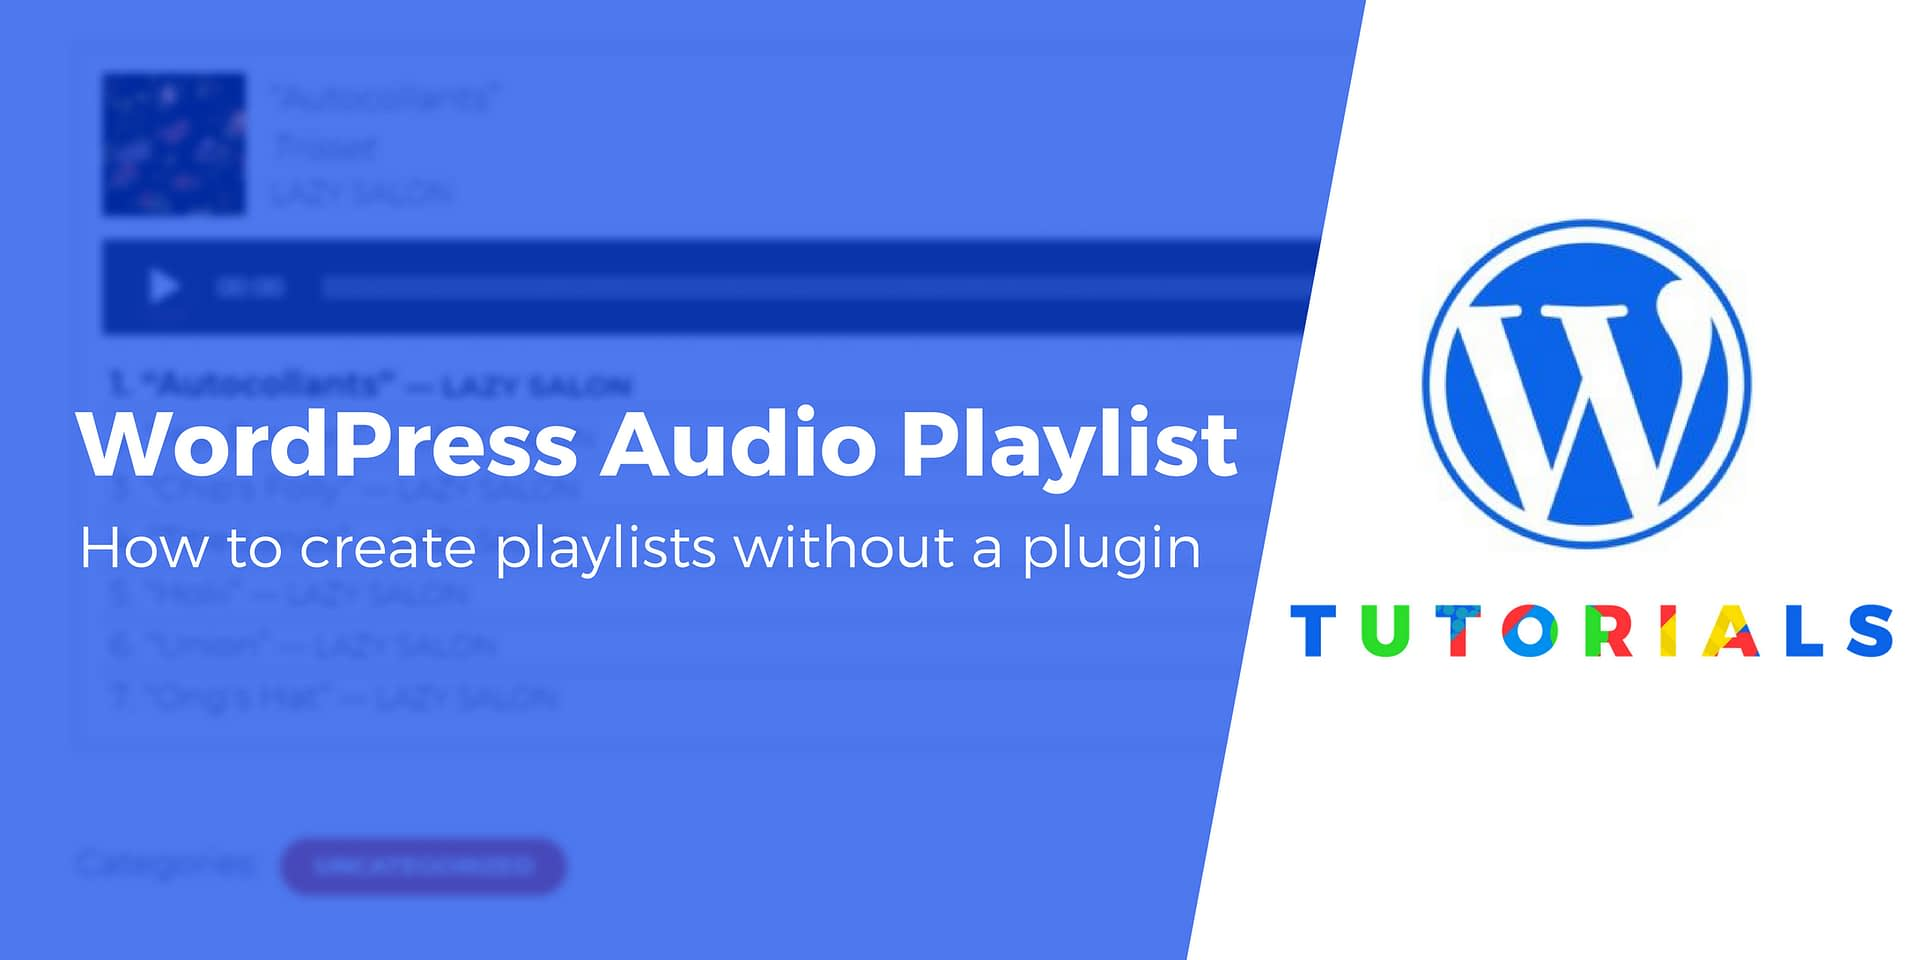 Beginner's Guide: How to Create a WordPress Audio Playlist